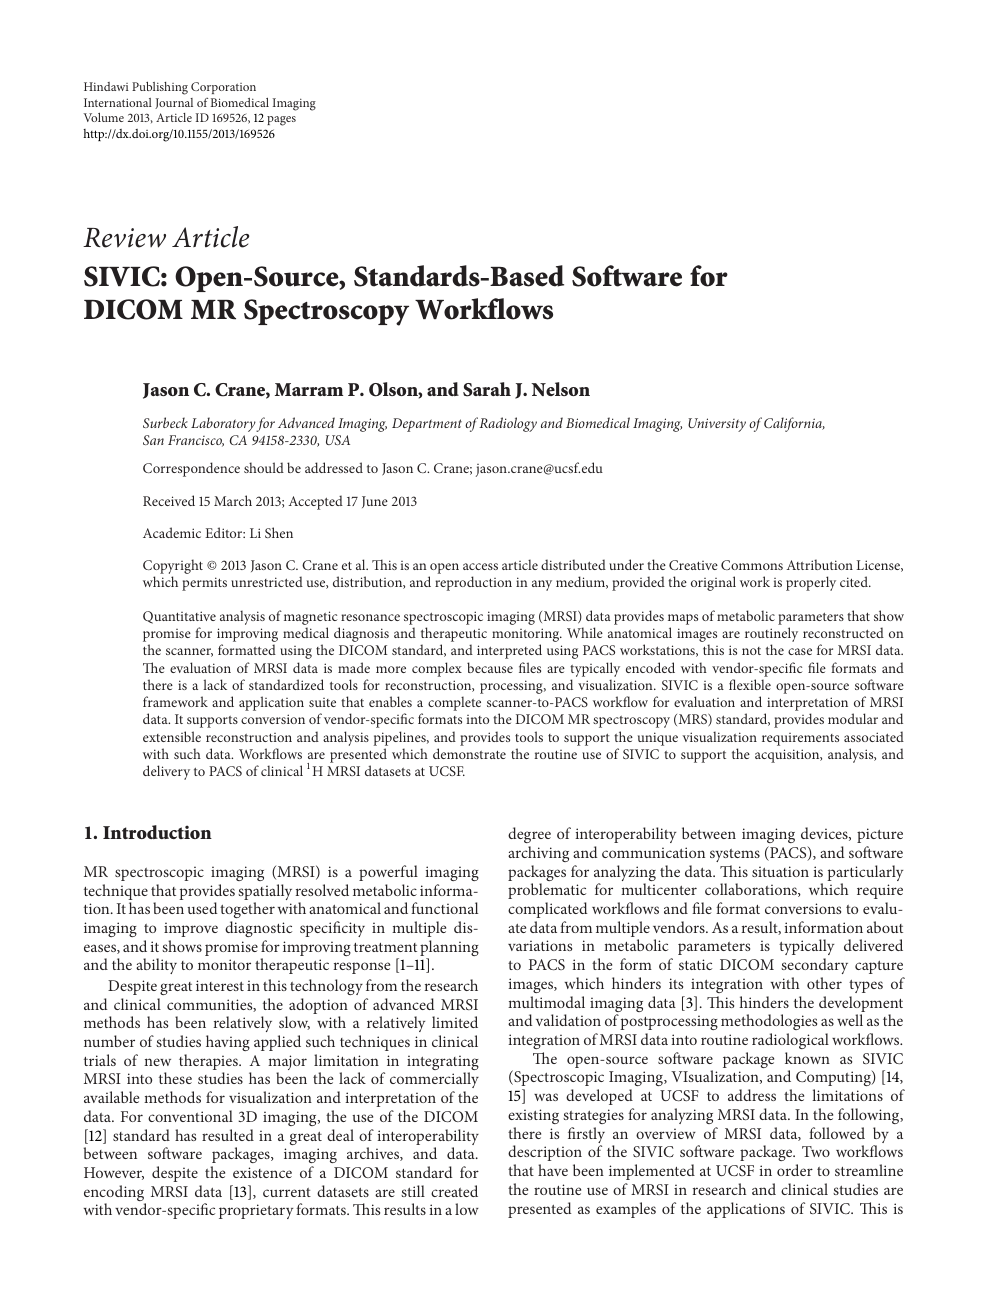 SIVIC: Open-Source, Standards-Based Software for DICOM MR